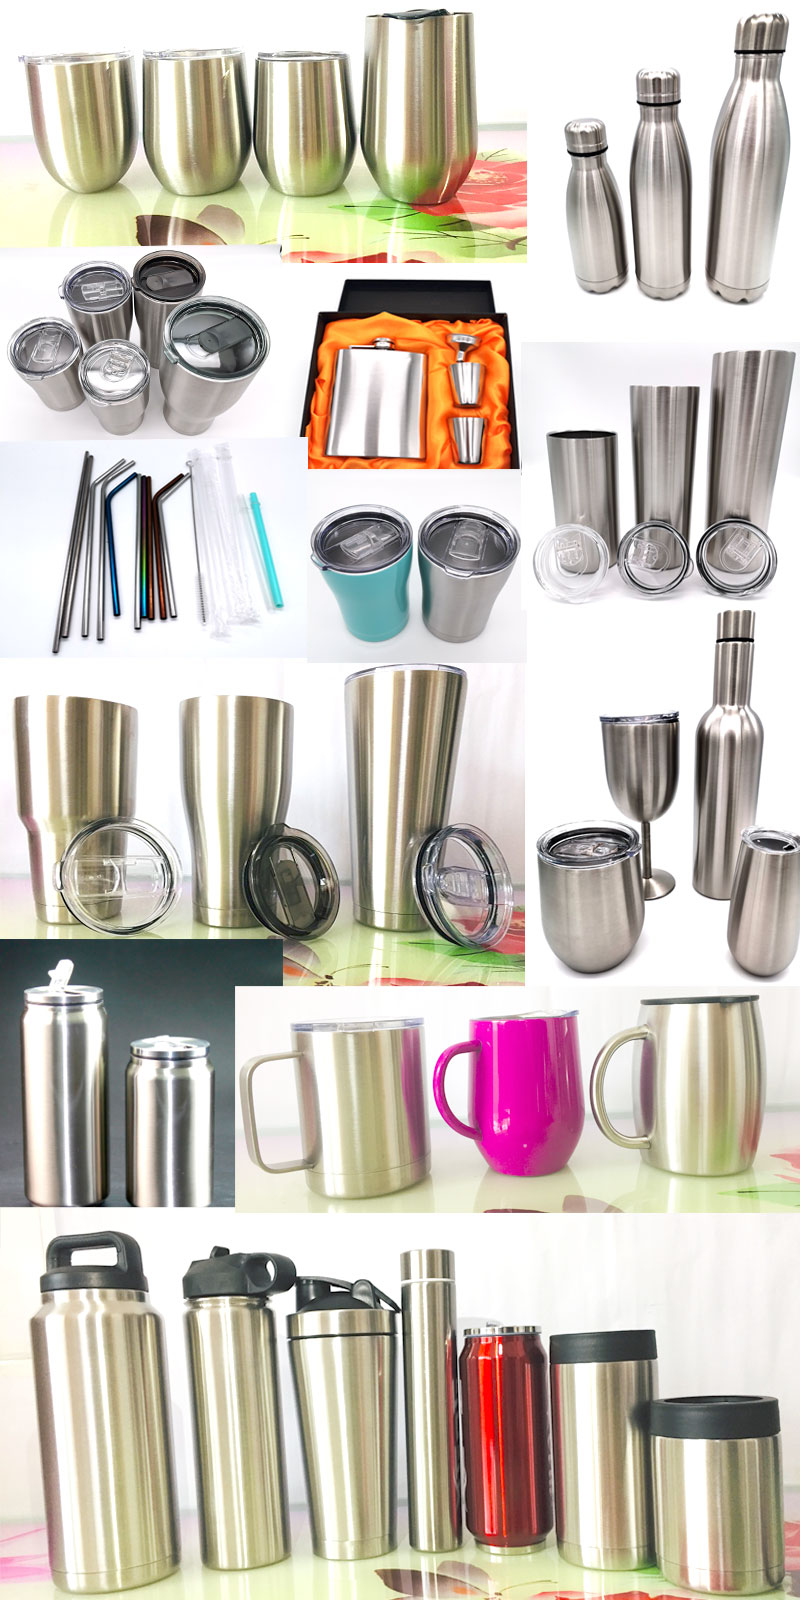 12oz stainelss steel wine cup